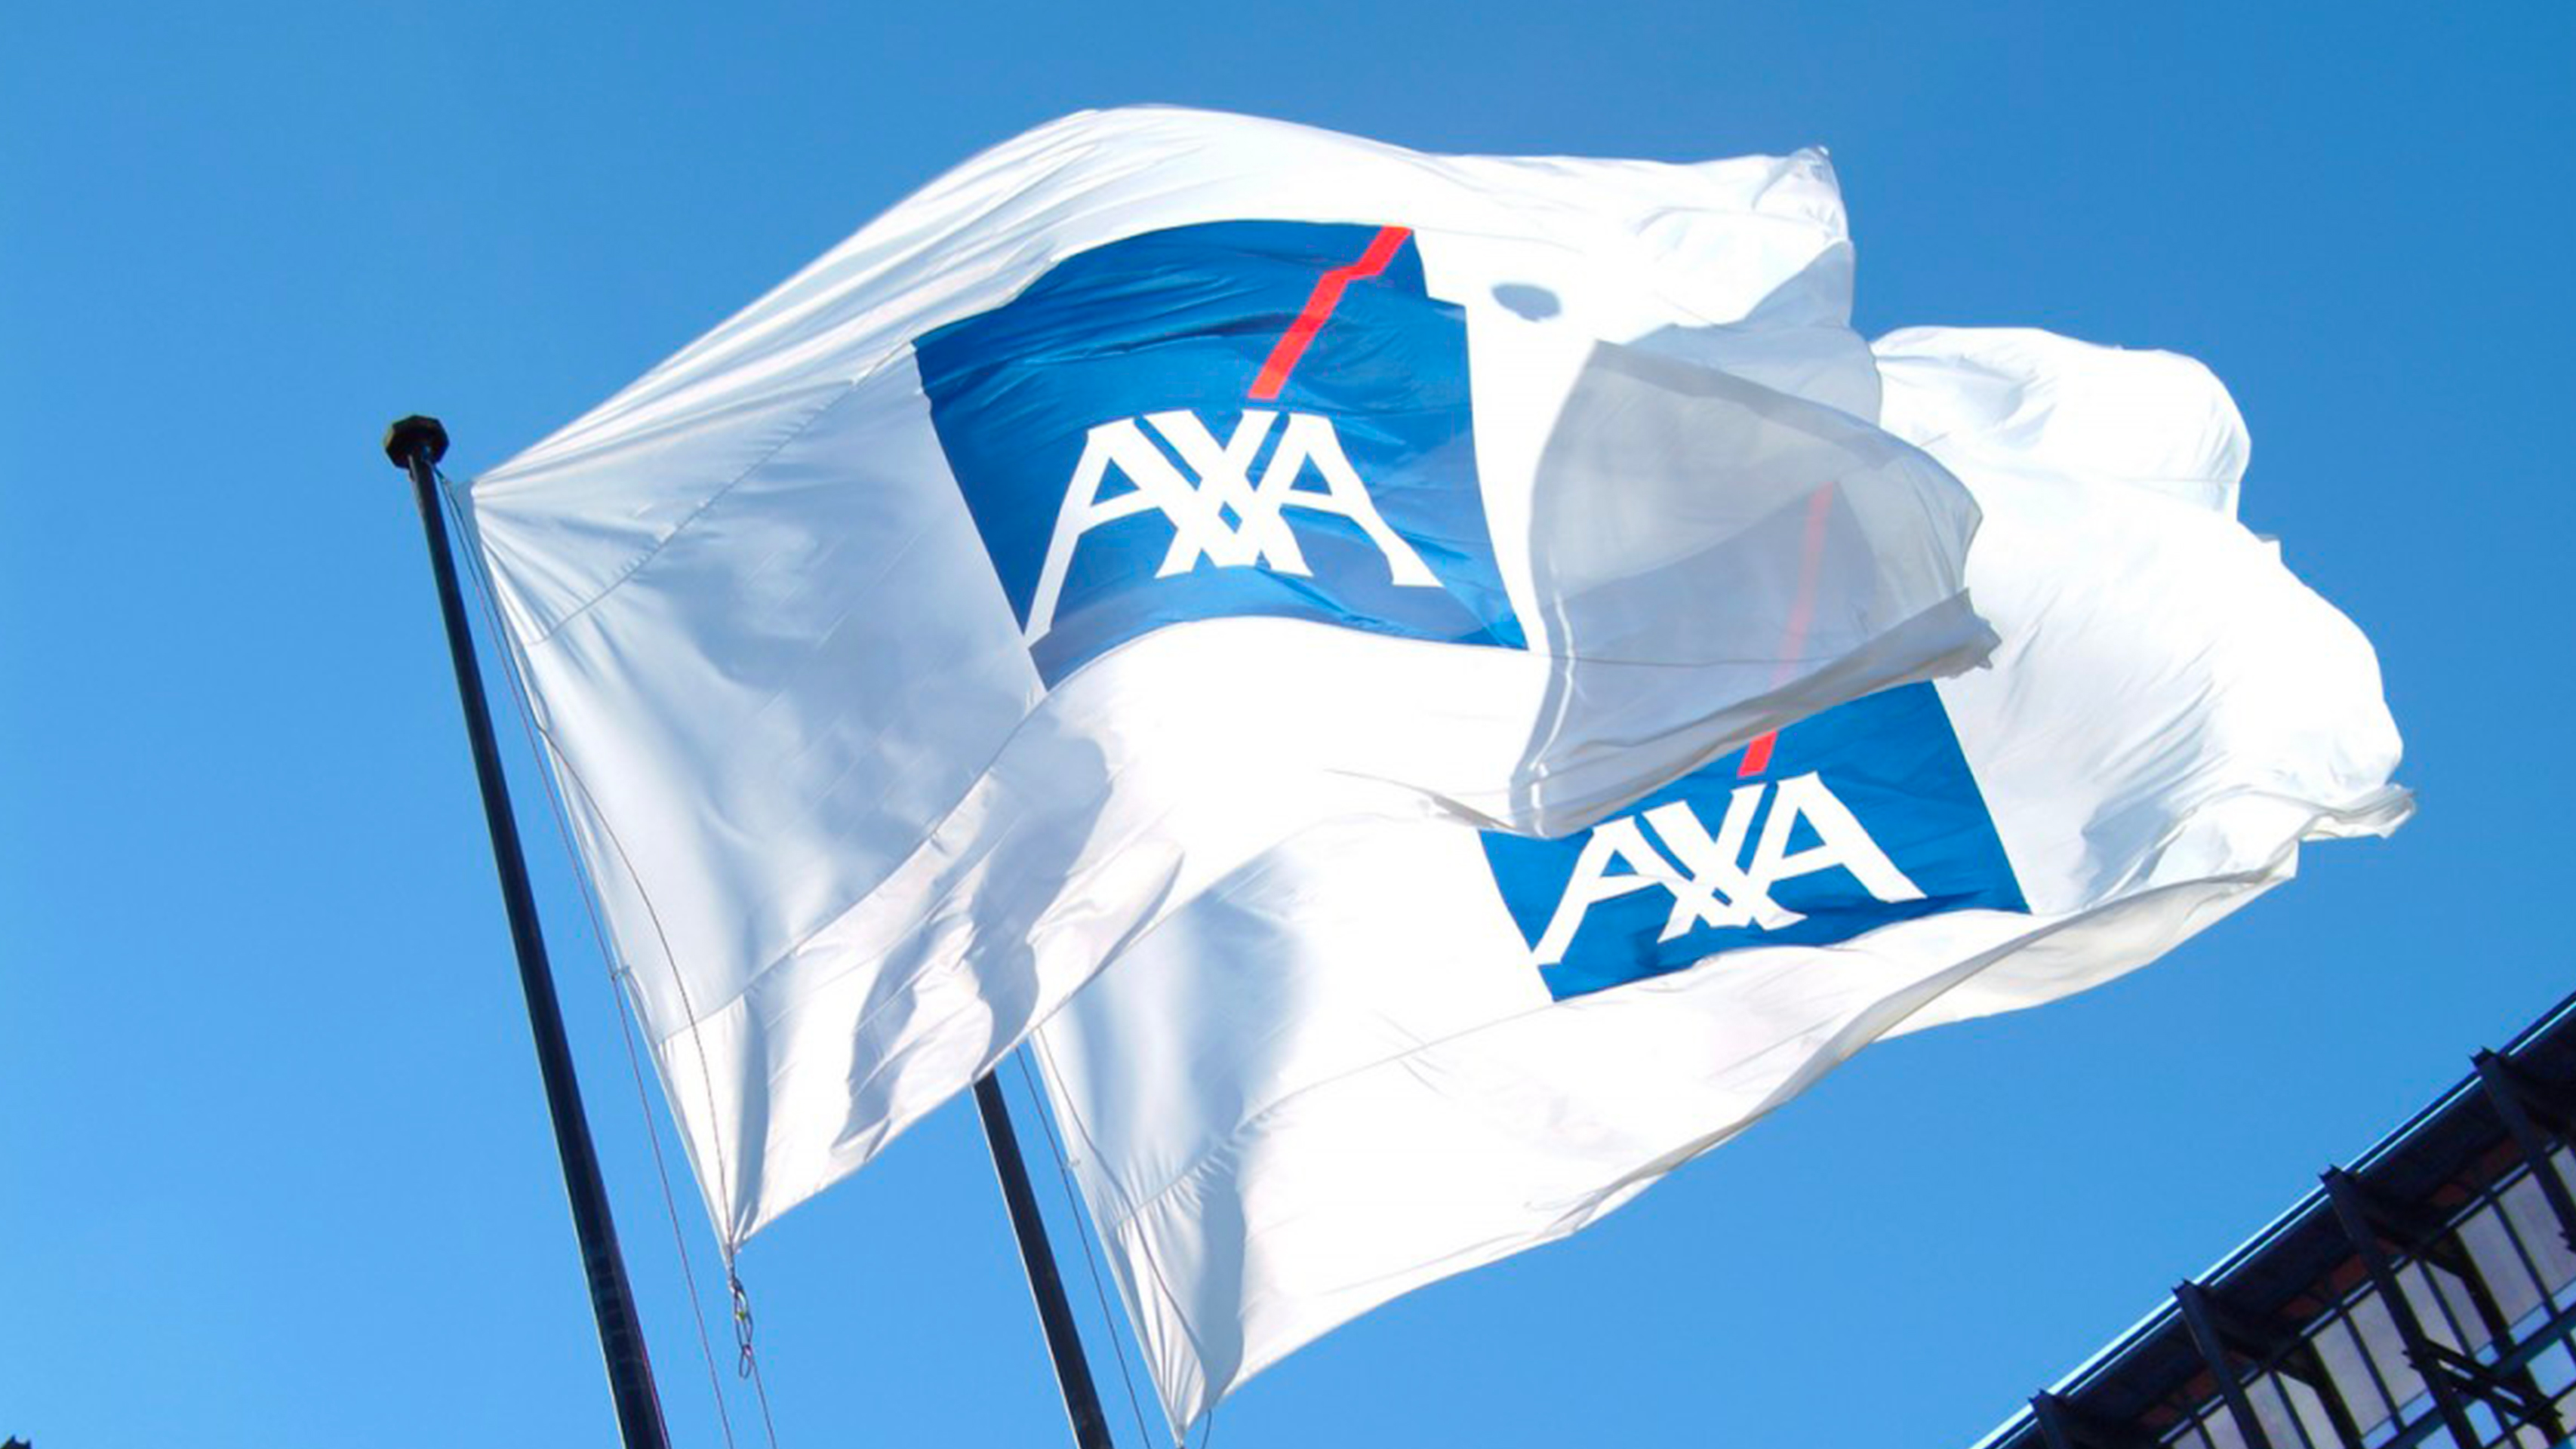 One_casehistory_axa_cover1.jpg